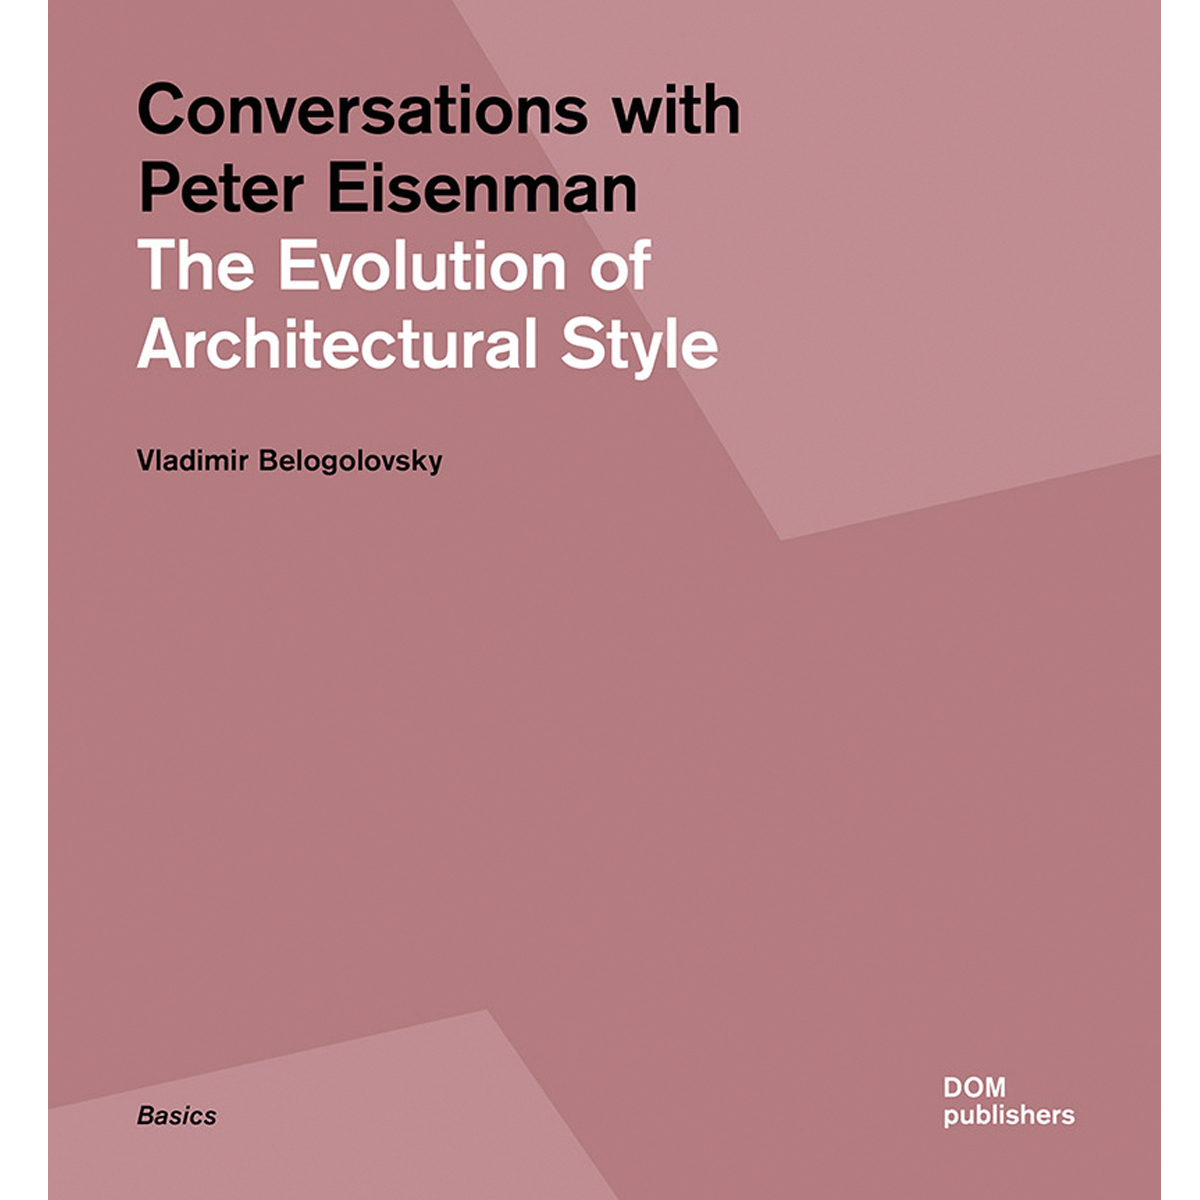 Conversations with Peter Eisenman